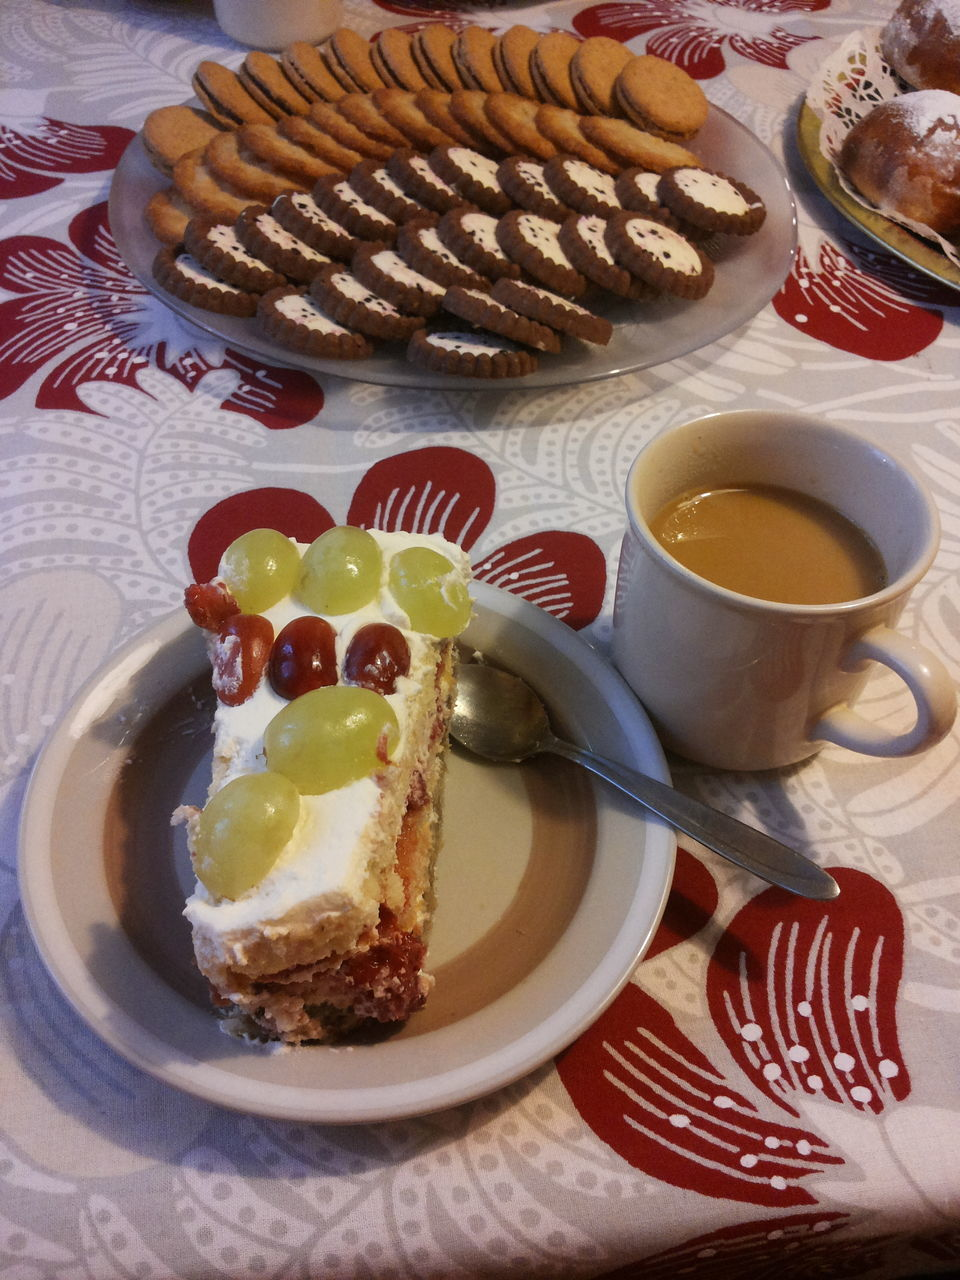 Pastry And Cookies With Tea On Table At Home